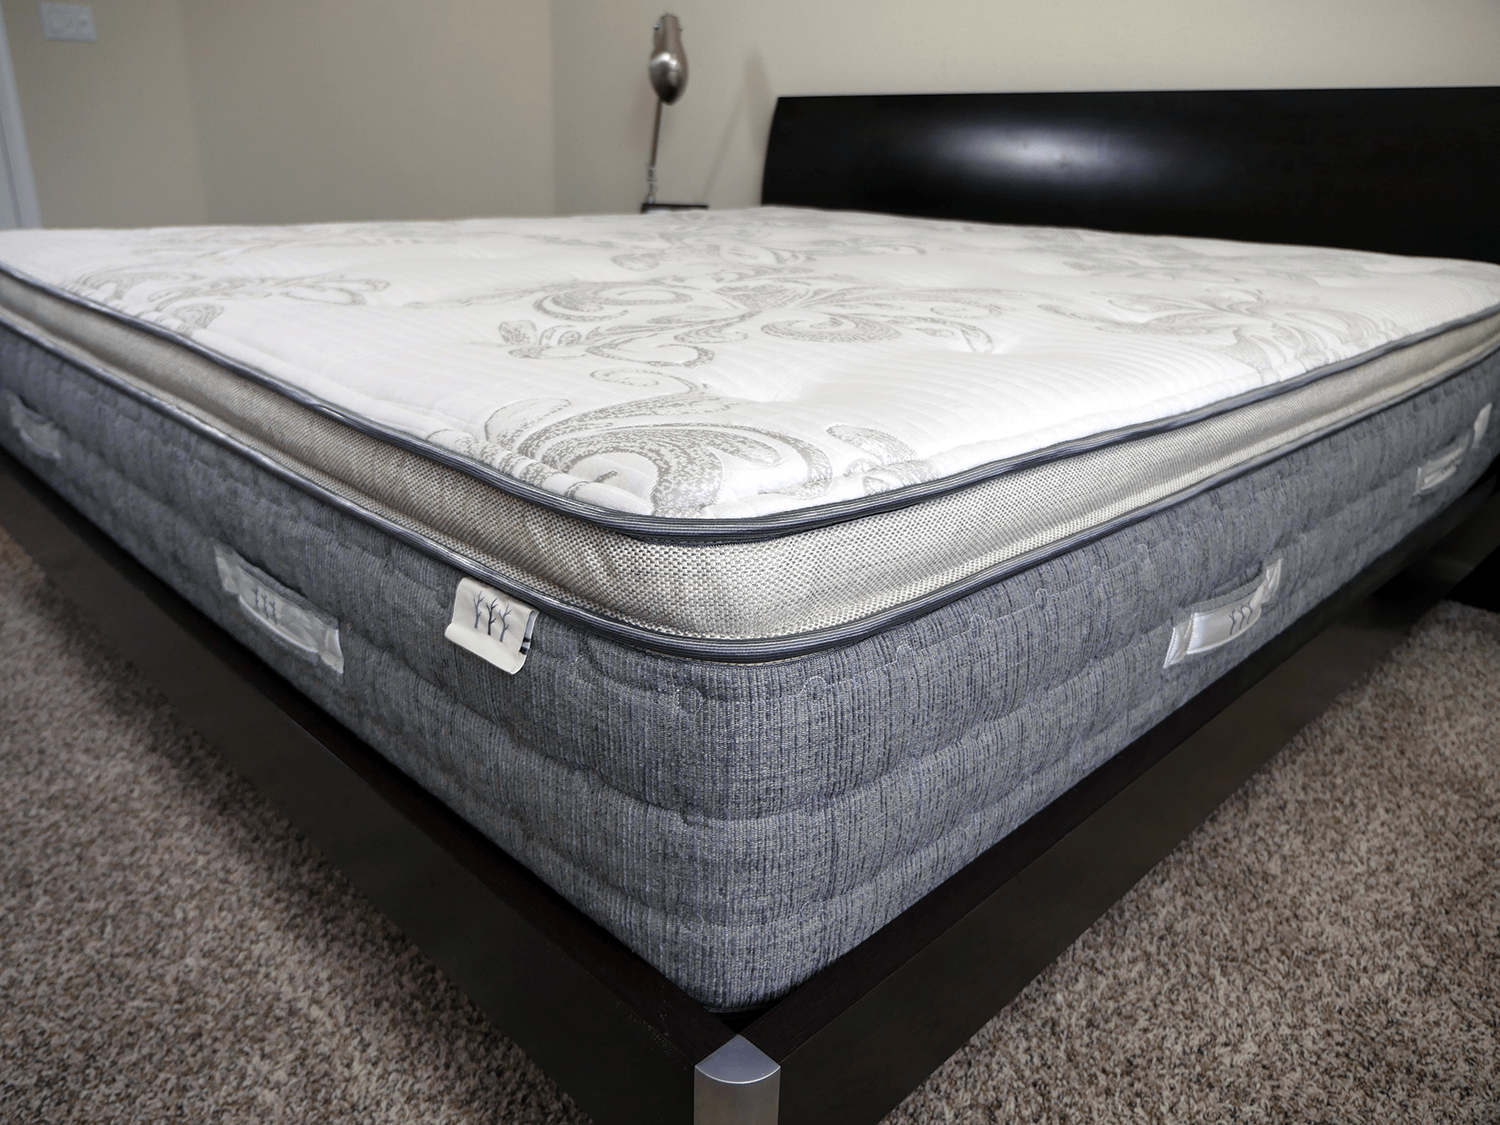 brentwood-sequoia-mattress-cover Brentwood Home Sequoia Mattress Review